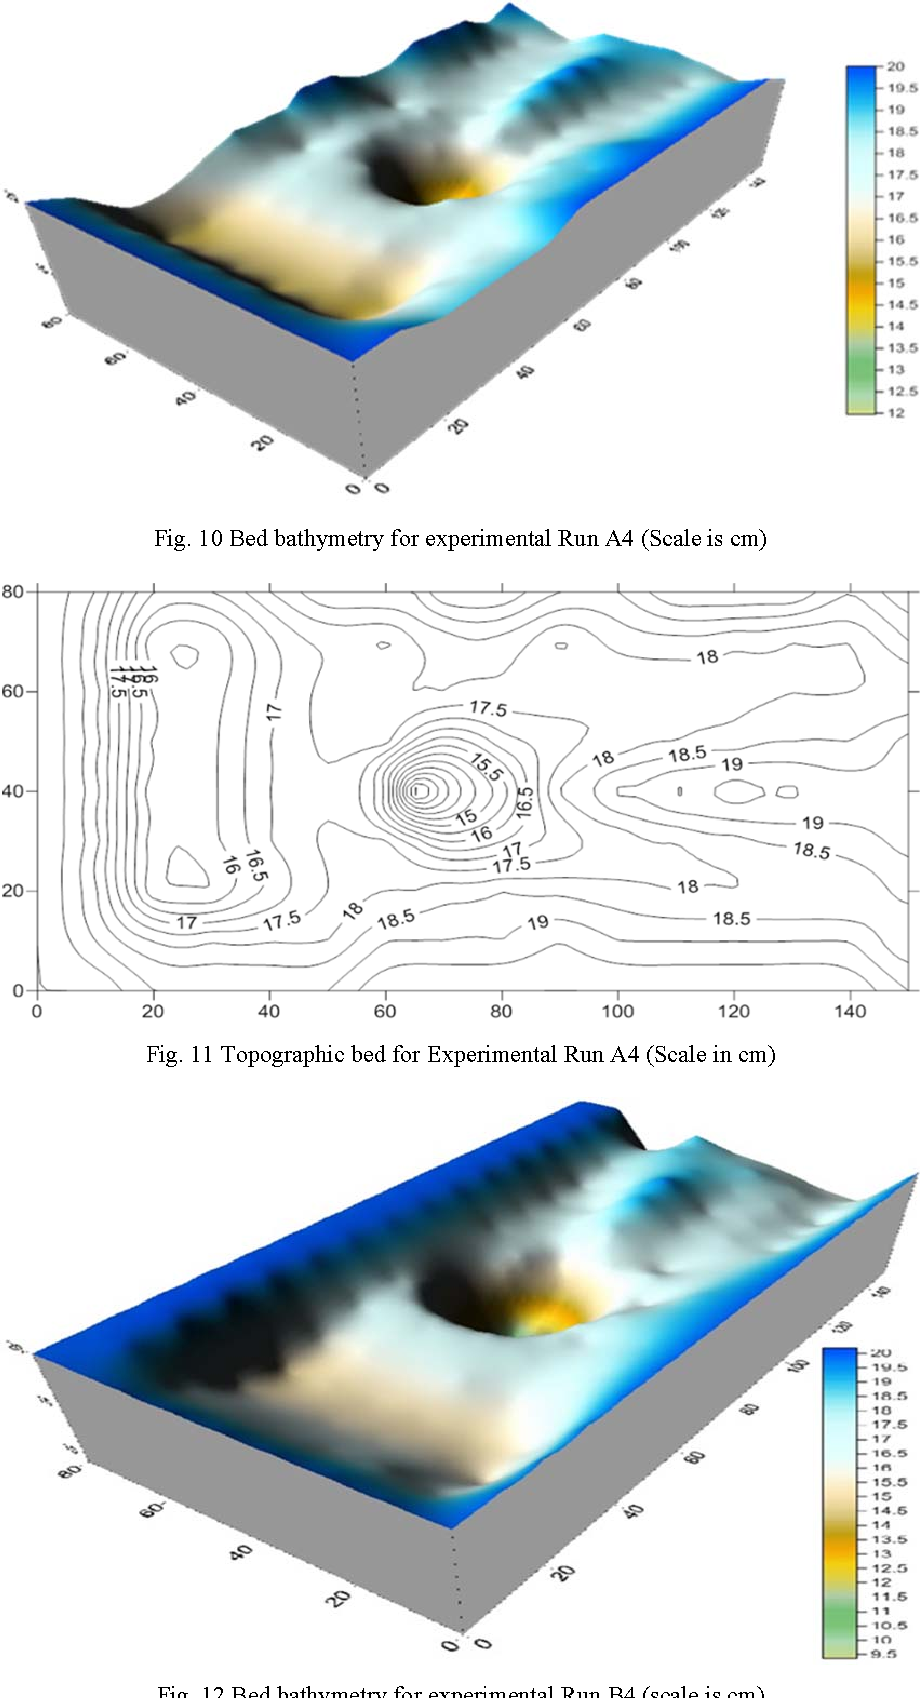 Fig. 10 Bed bathymetry for experimental Run A4 (Scale is cm)